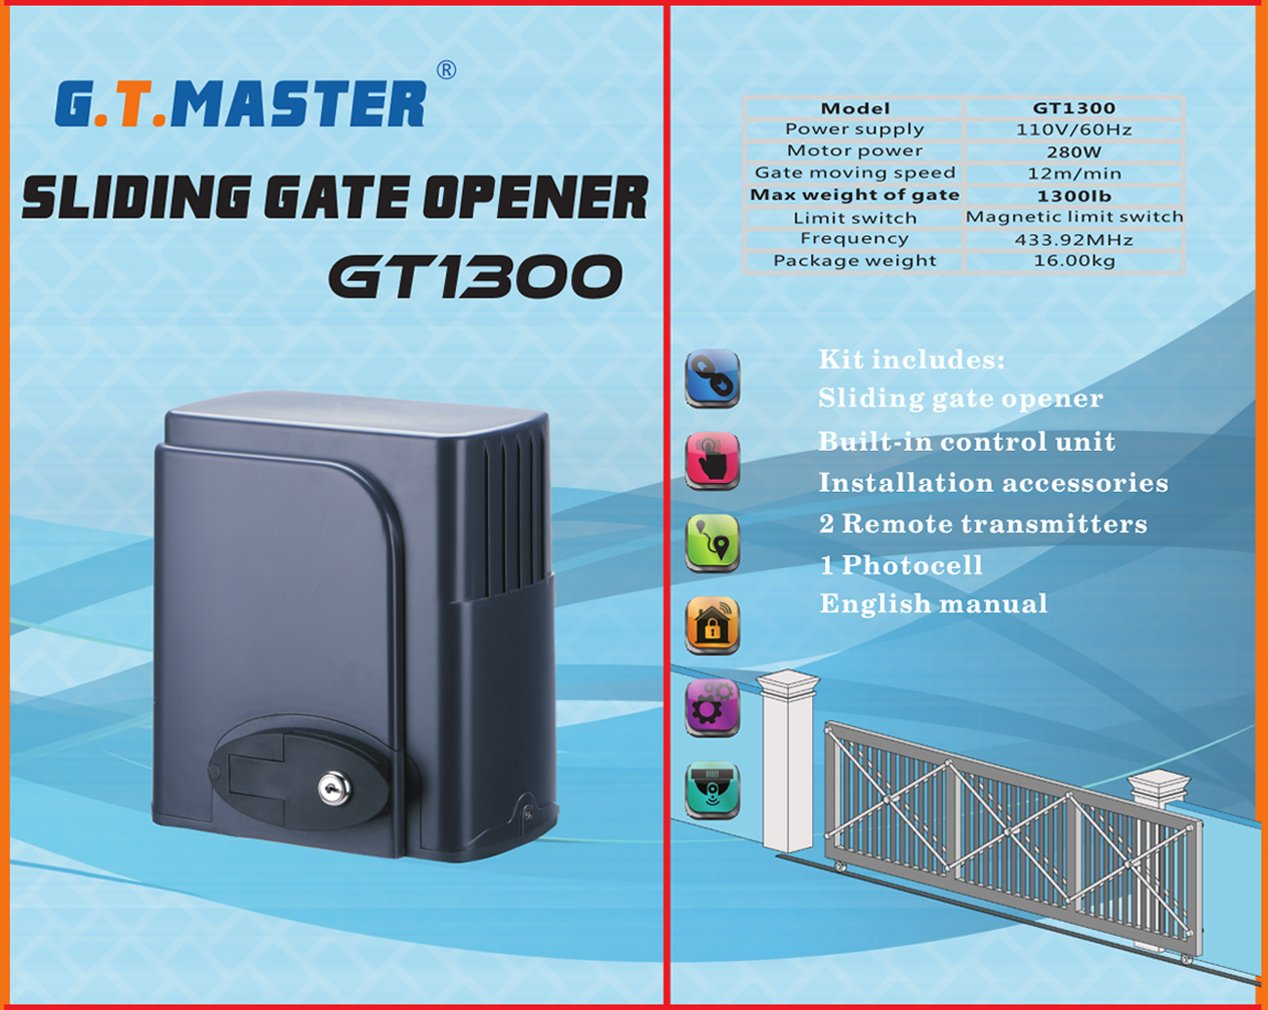 Gtmaster Sliding Automatic Gate Opener Kit Driveway Business Industrial Gt Electrical Test Equipment Motors Security Door Operator Hardware With Two Transmitters And Infrared Photocell Sensor